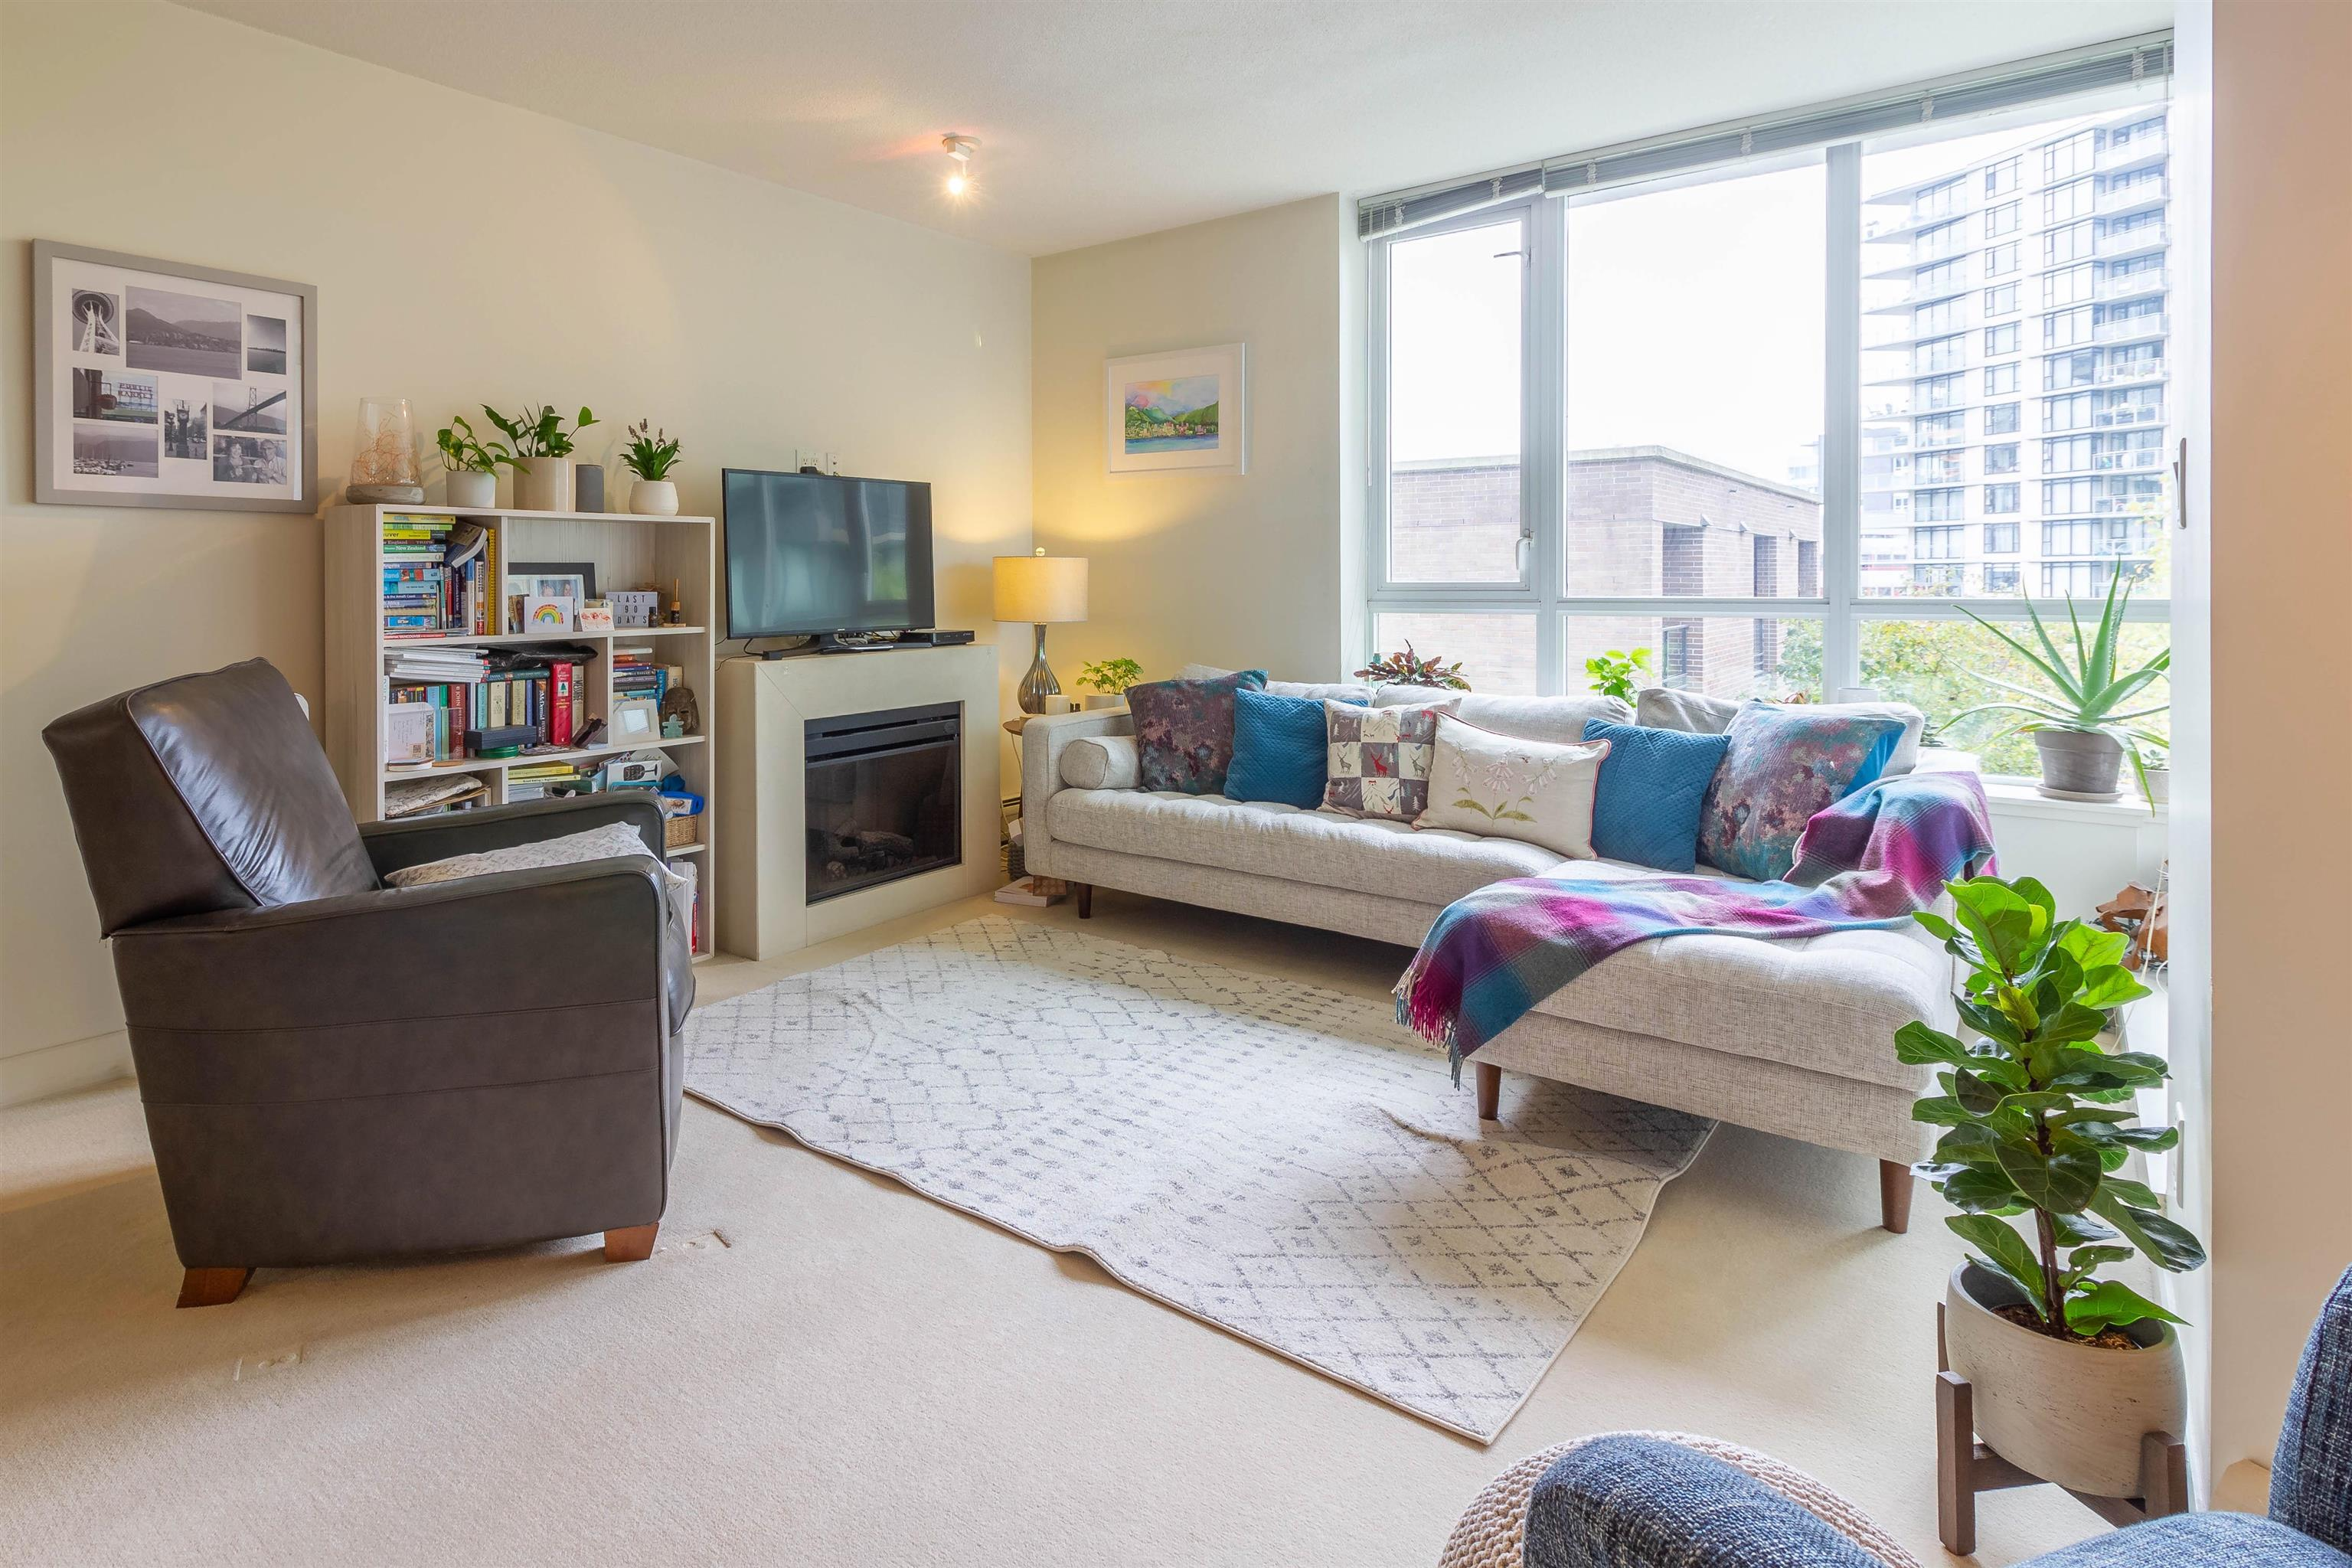 208 175 W 2ND STREET - Lower Lonsdale Apartment/Condo for sale, 1 Bedroom (R2625562) - #5